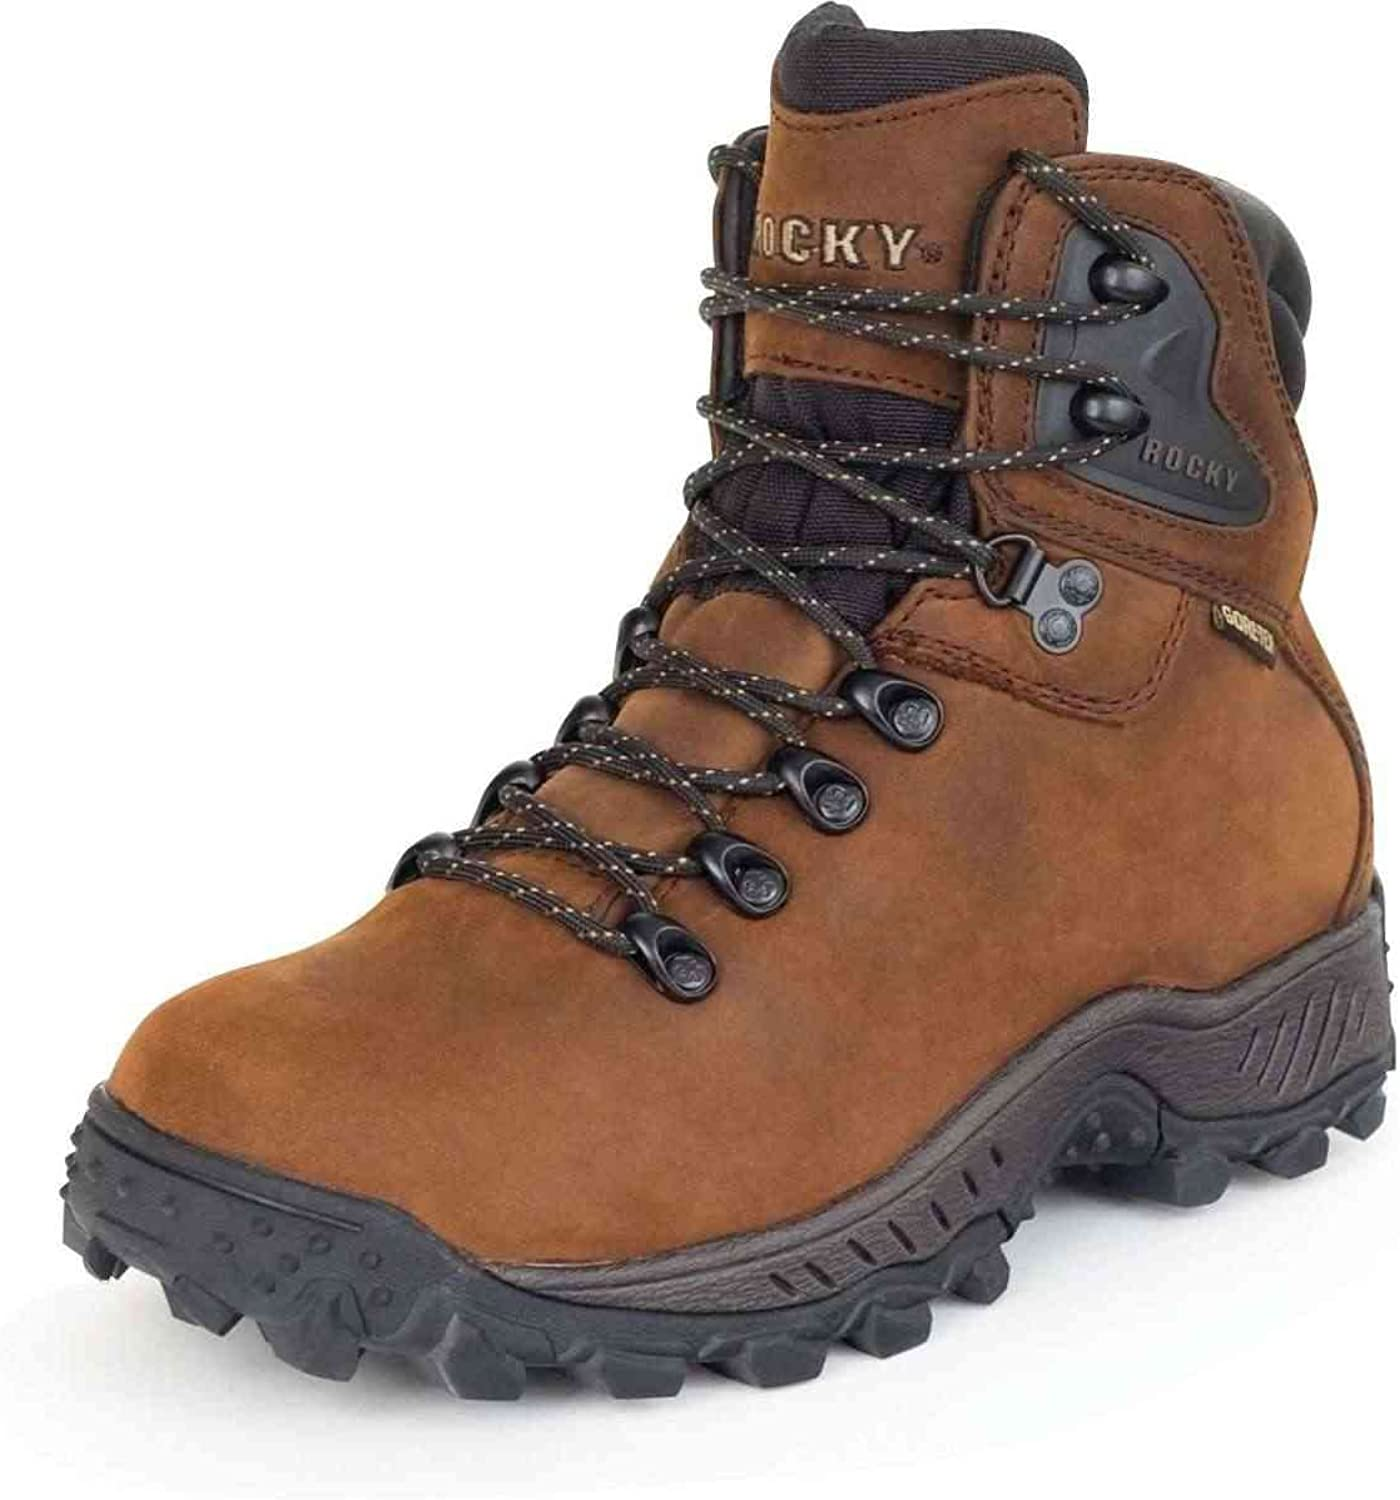 Rocky Mens Fq0005212 Hiking Boot